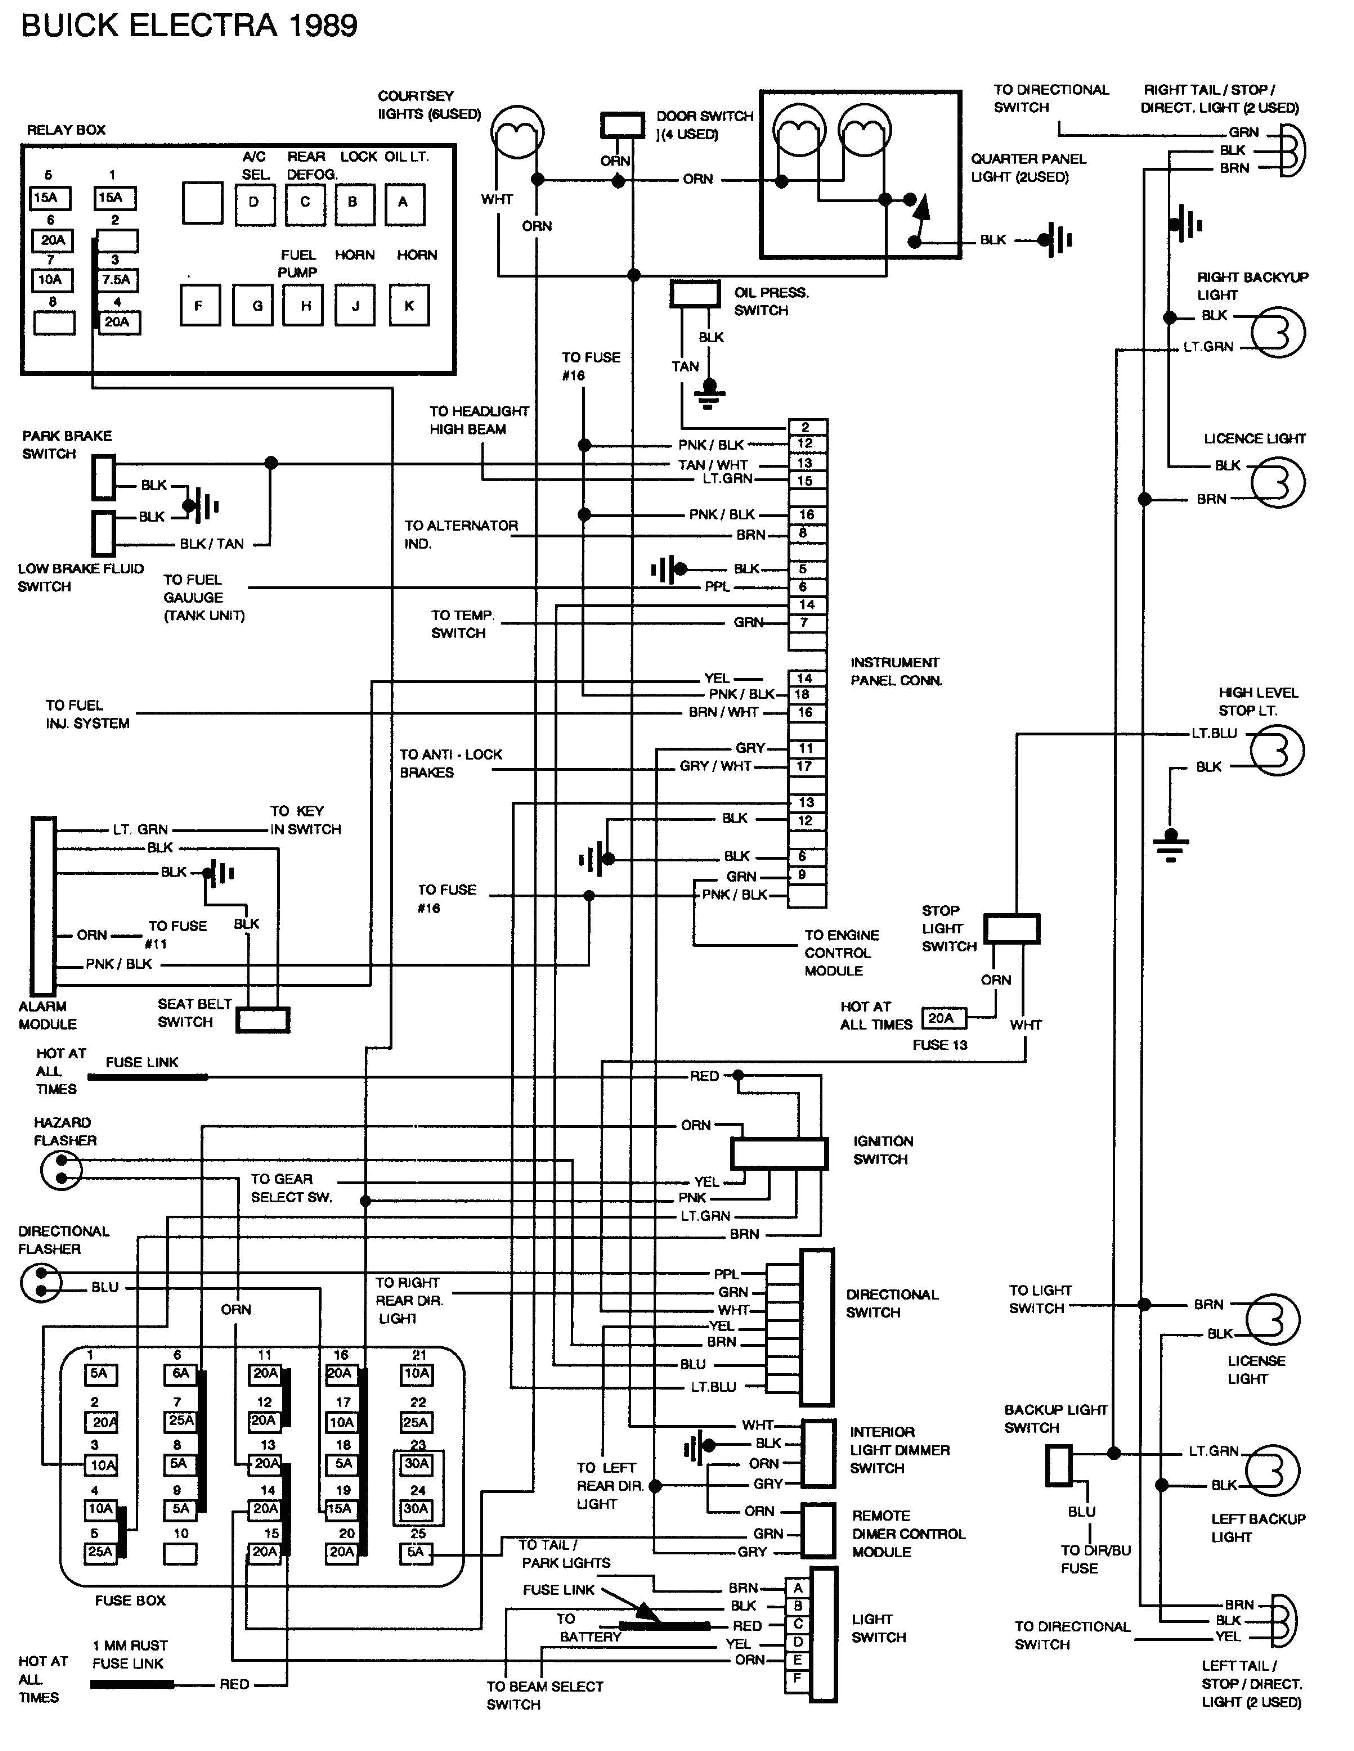 wiring diagram for buick rendezvous wiring diagram blog 2005 buick rendezvous window wiring diagrams free download